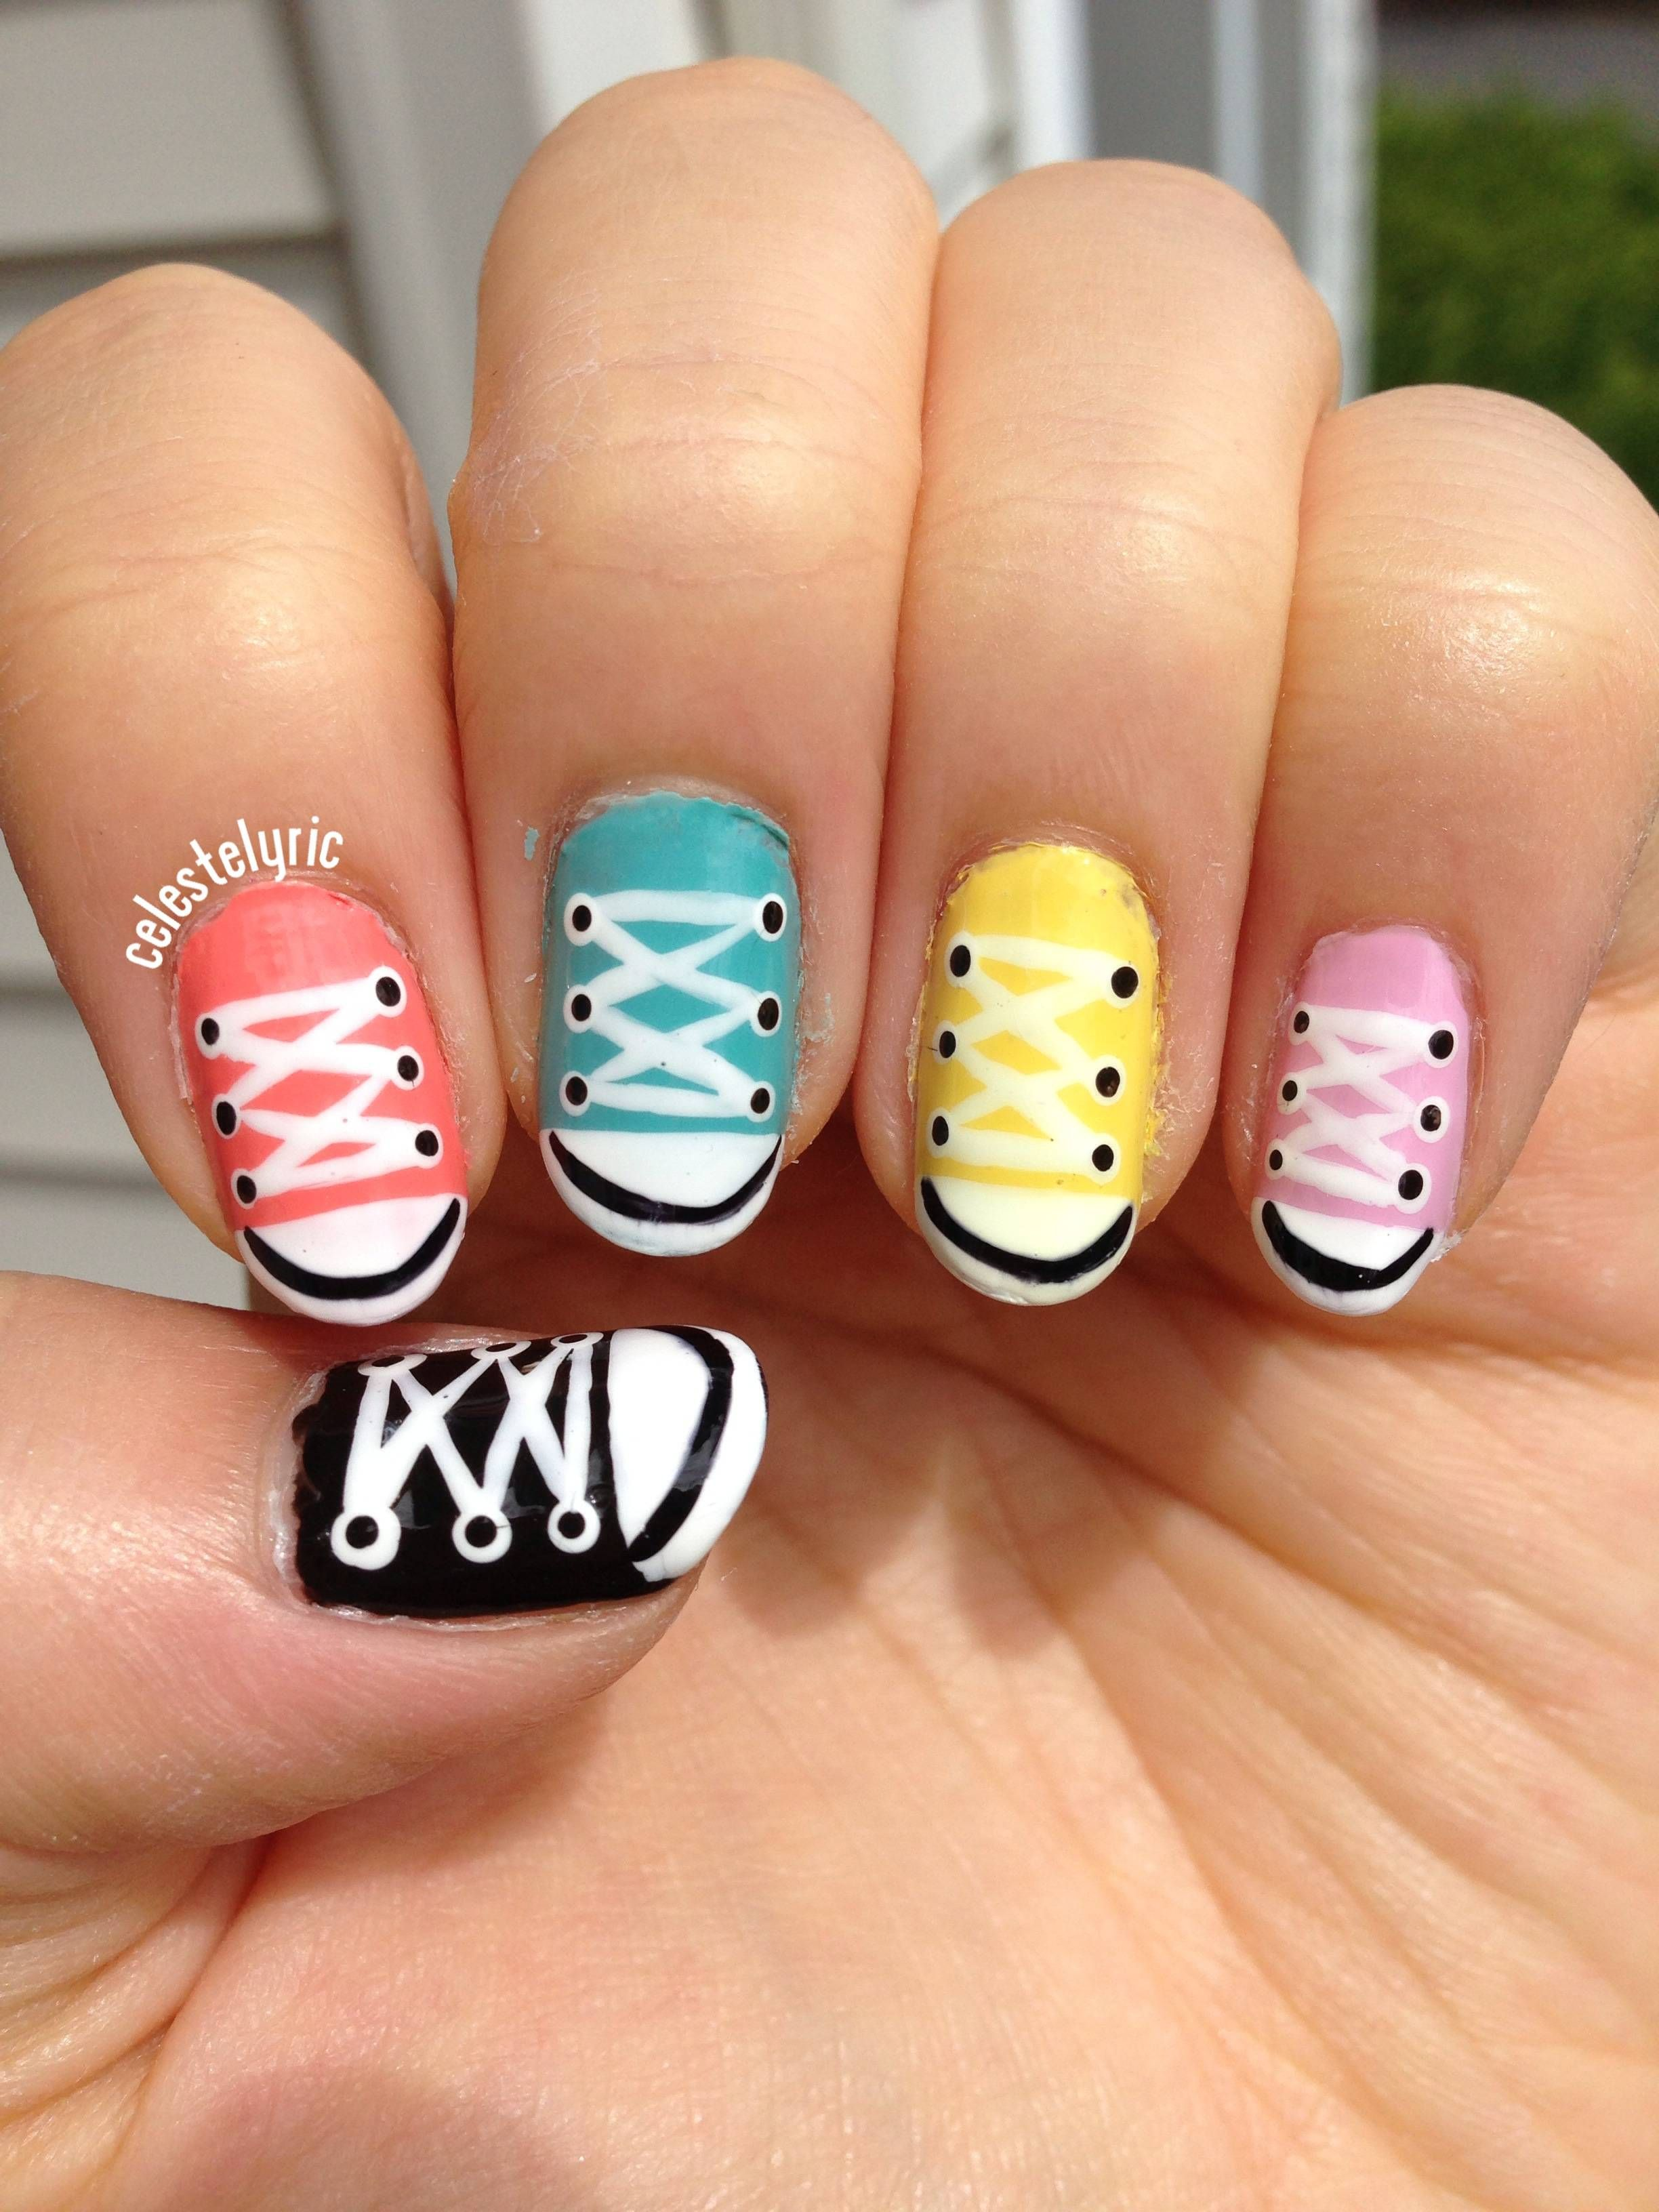 Converse nails! by bunnygif to RedditLaqueristas